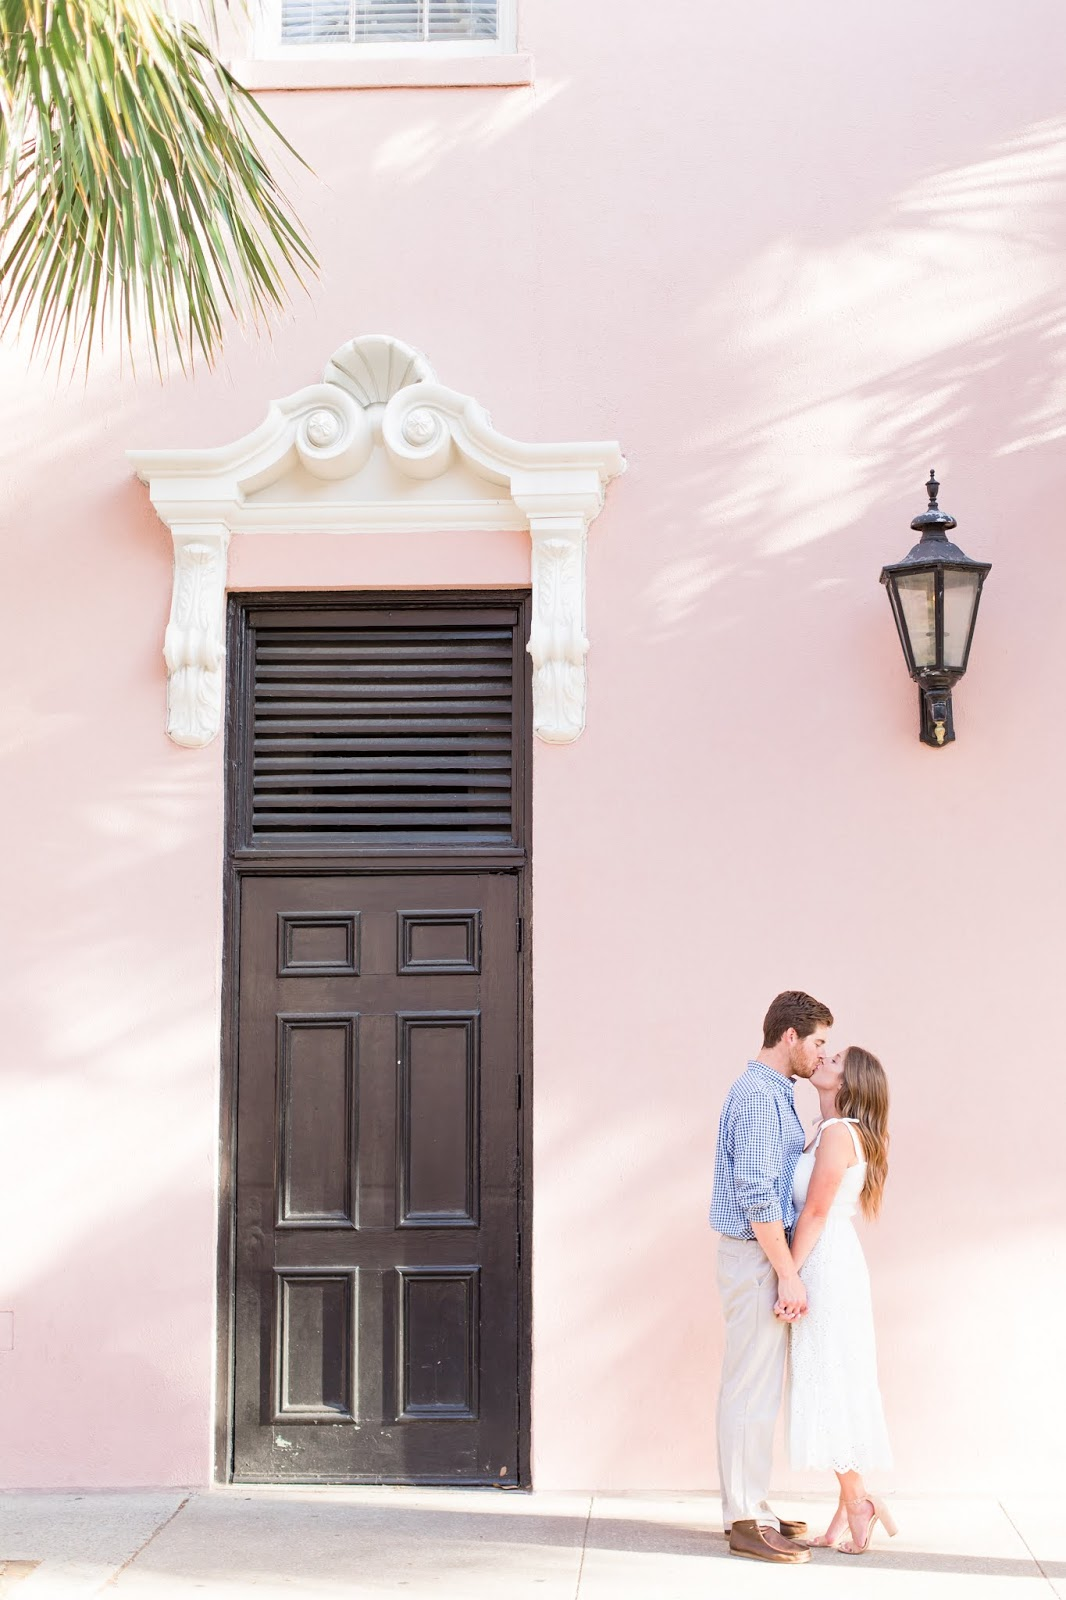 Downtown Charleston Engagement Photoshoot Session - Chasing Cinderella